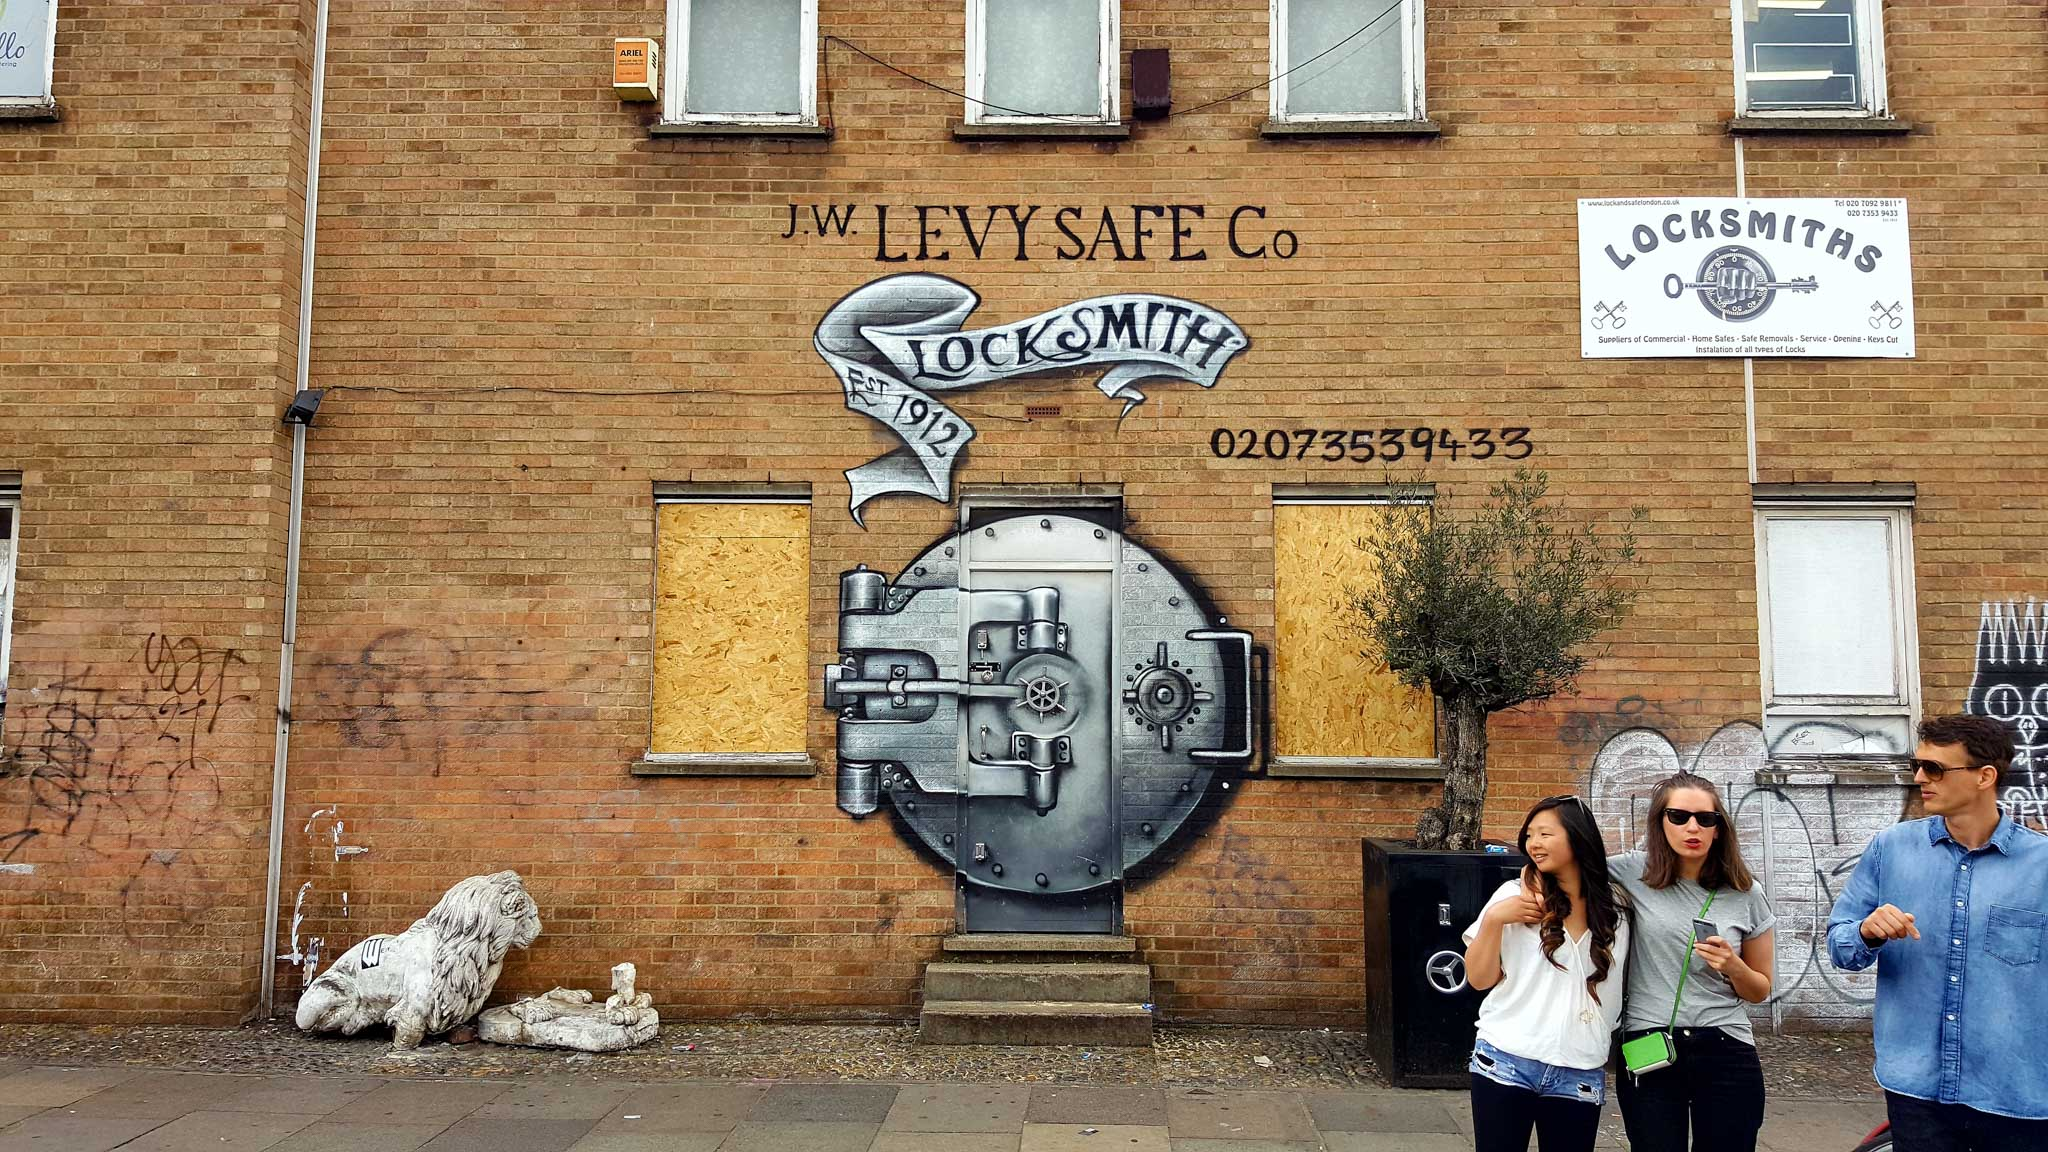 mural of a giant old-school safe advertising a locksmith in London